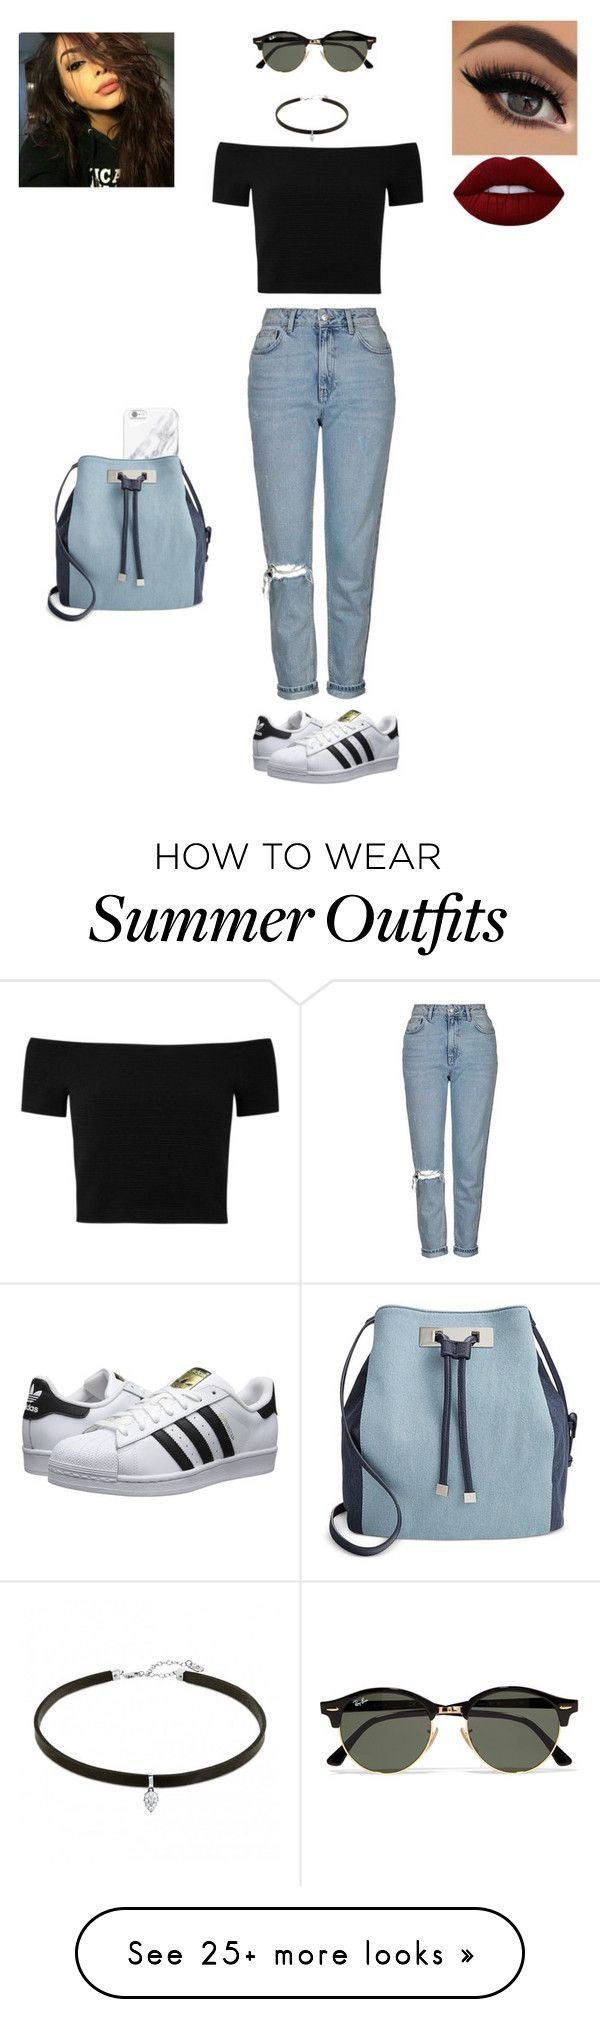 "581d18e25661 ""Tumblr summer outfit"" by treasurematlock on Polyvore featuring Lime Crime"